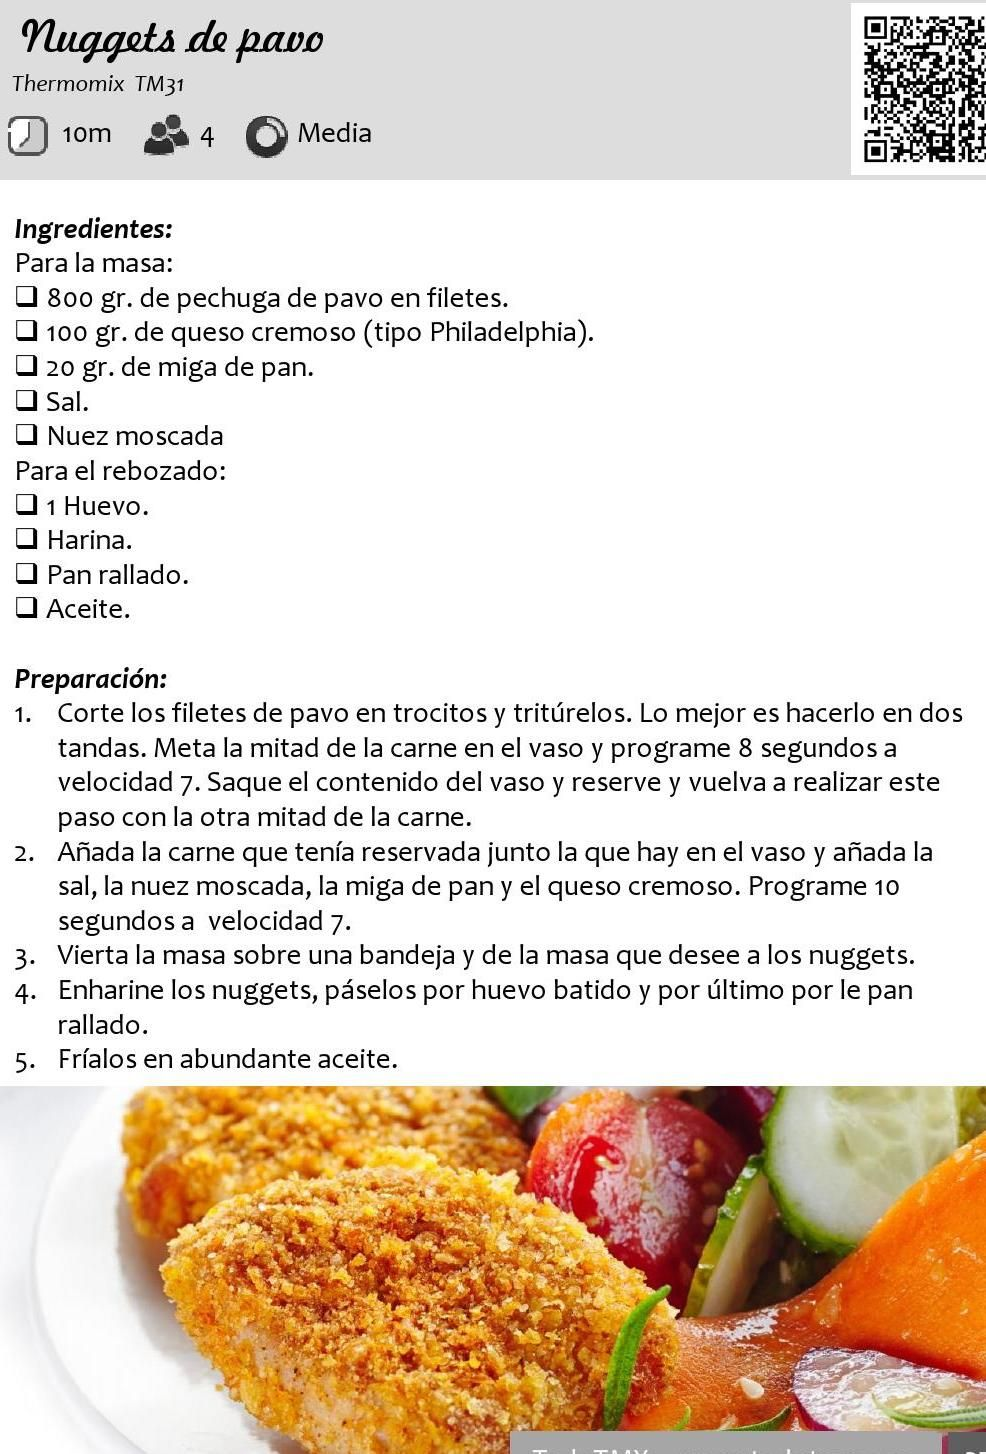 Nuggets de pavo